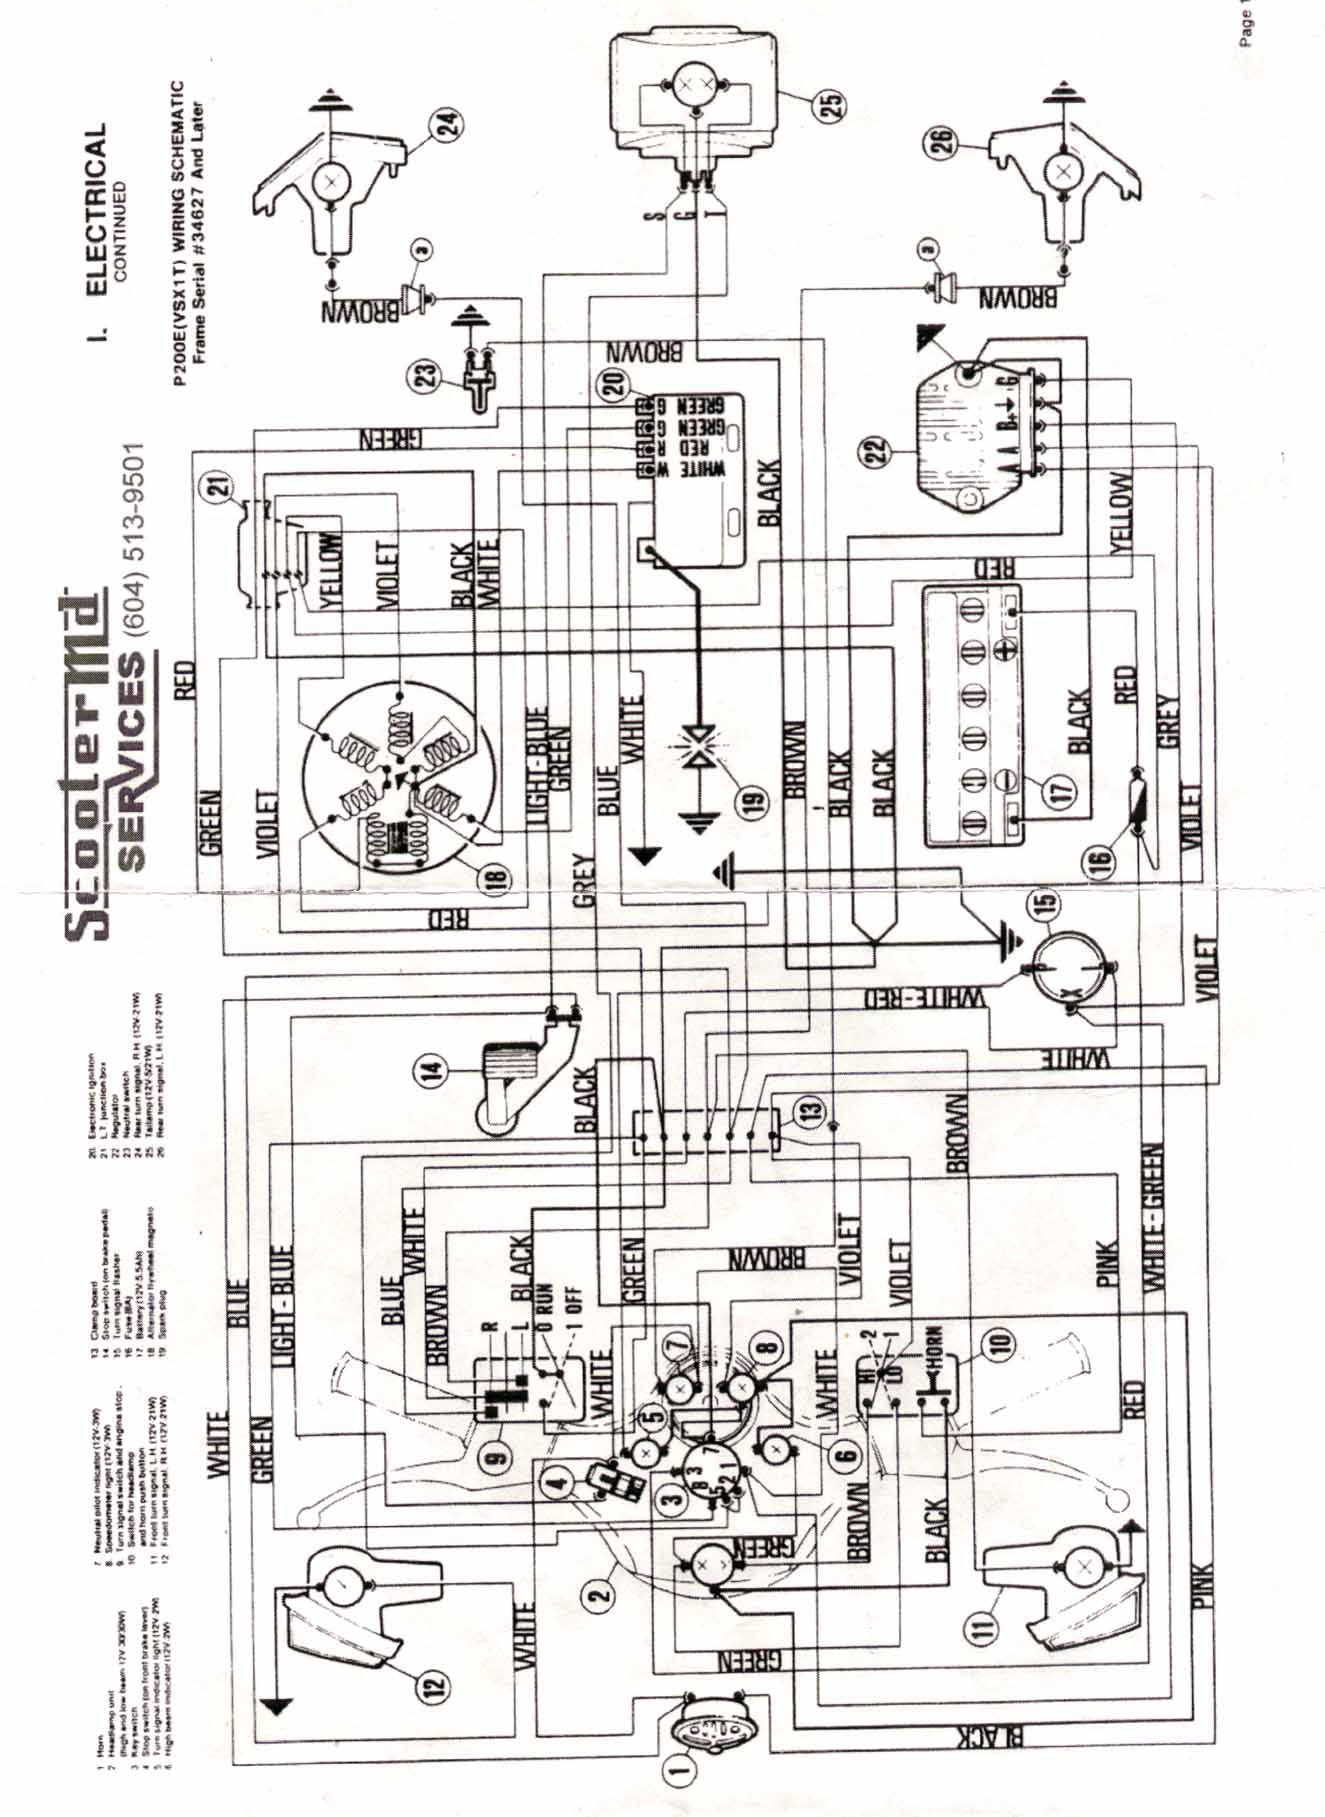 p200diag2 vespa p series maintenance & repair vespa p125x wiring diagram at edmiracle.co